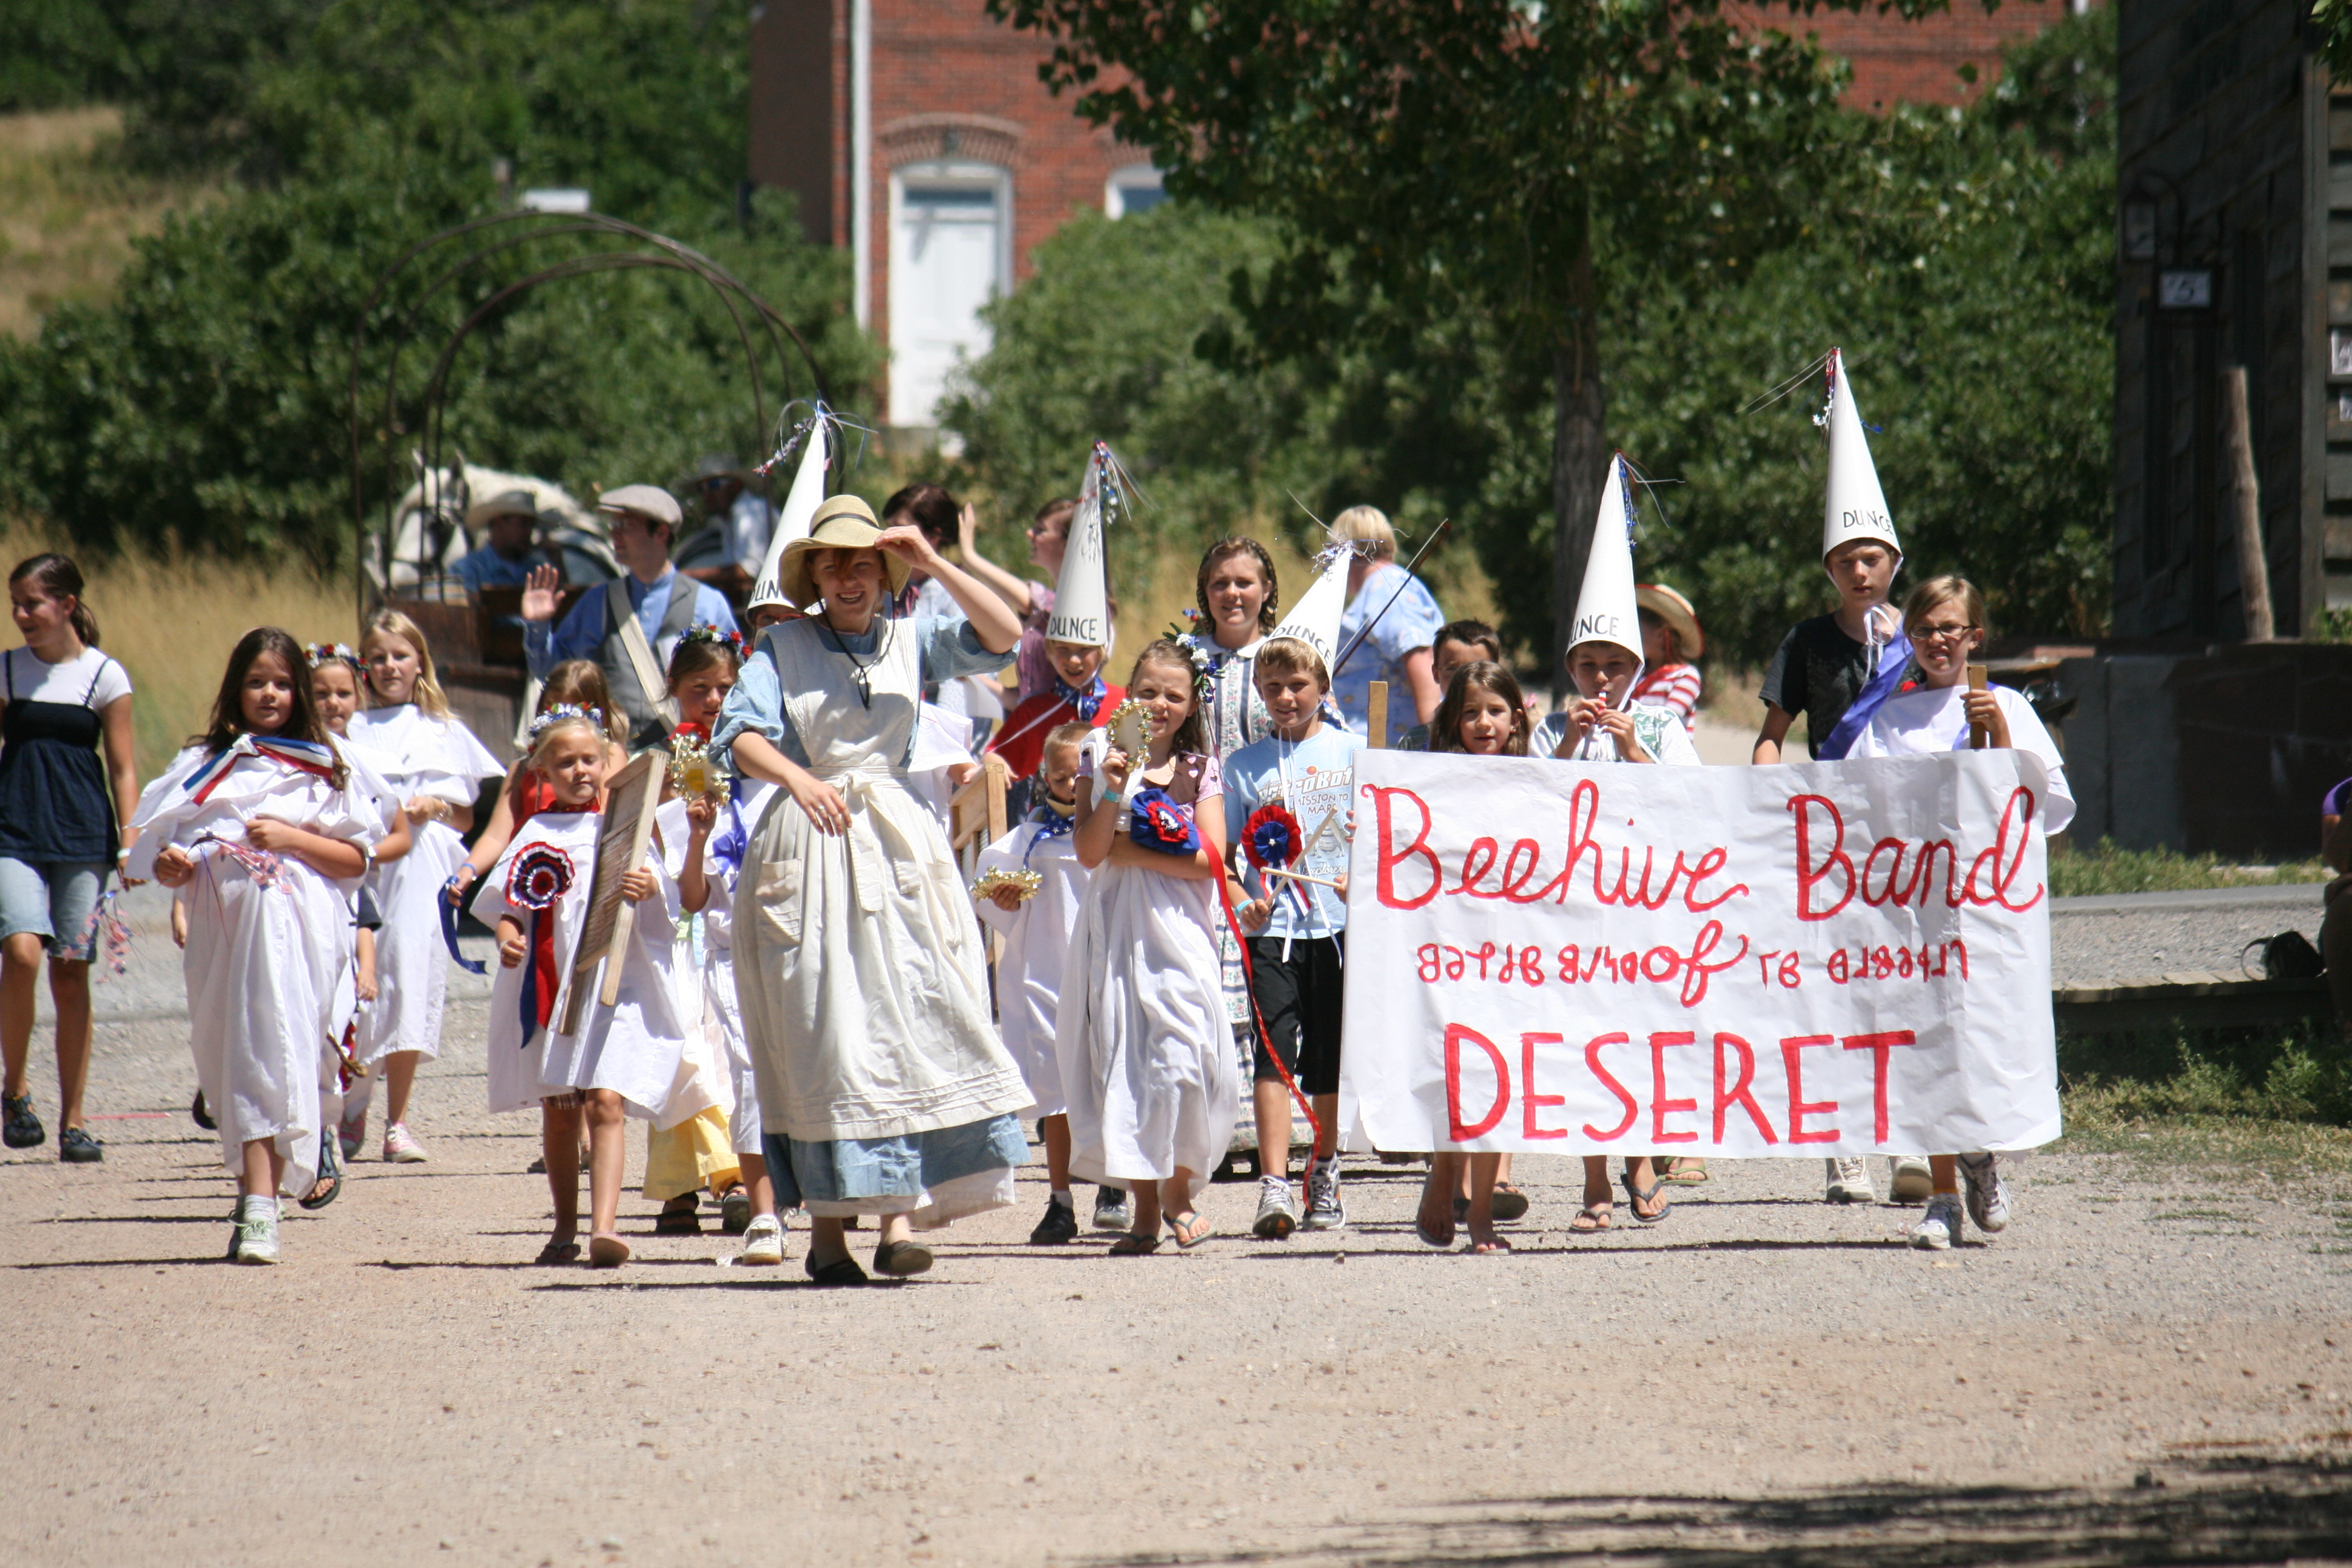 Pioneer Days at This Is The Place Heritage Park, Salt Lake City, UT, Jul 24